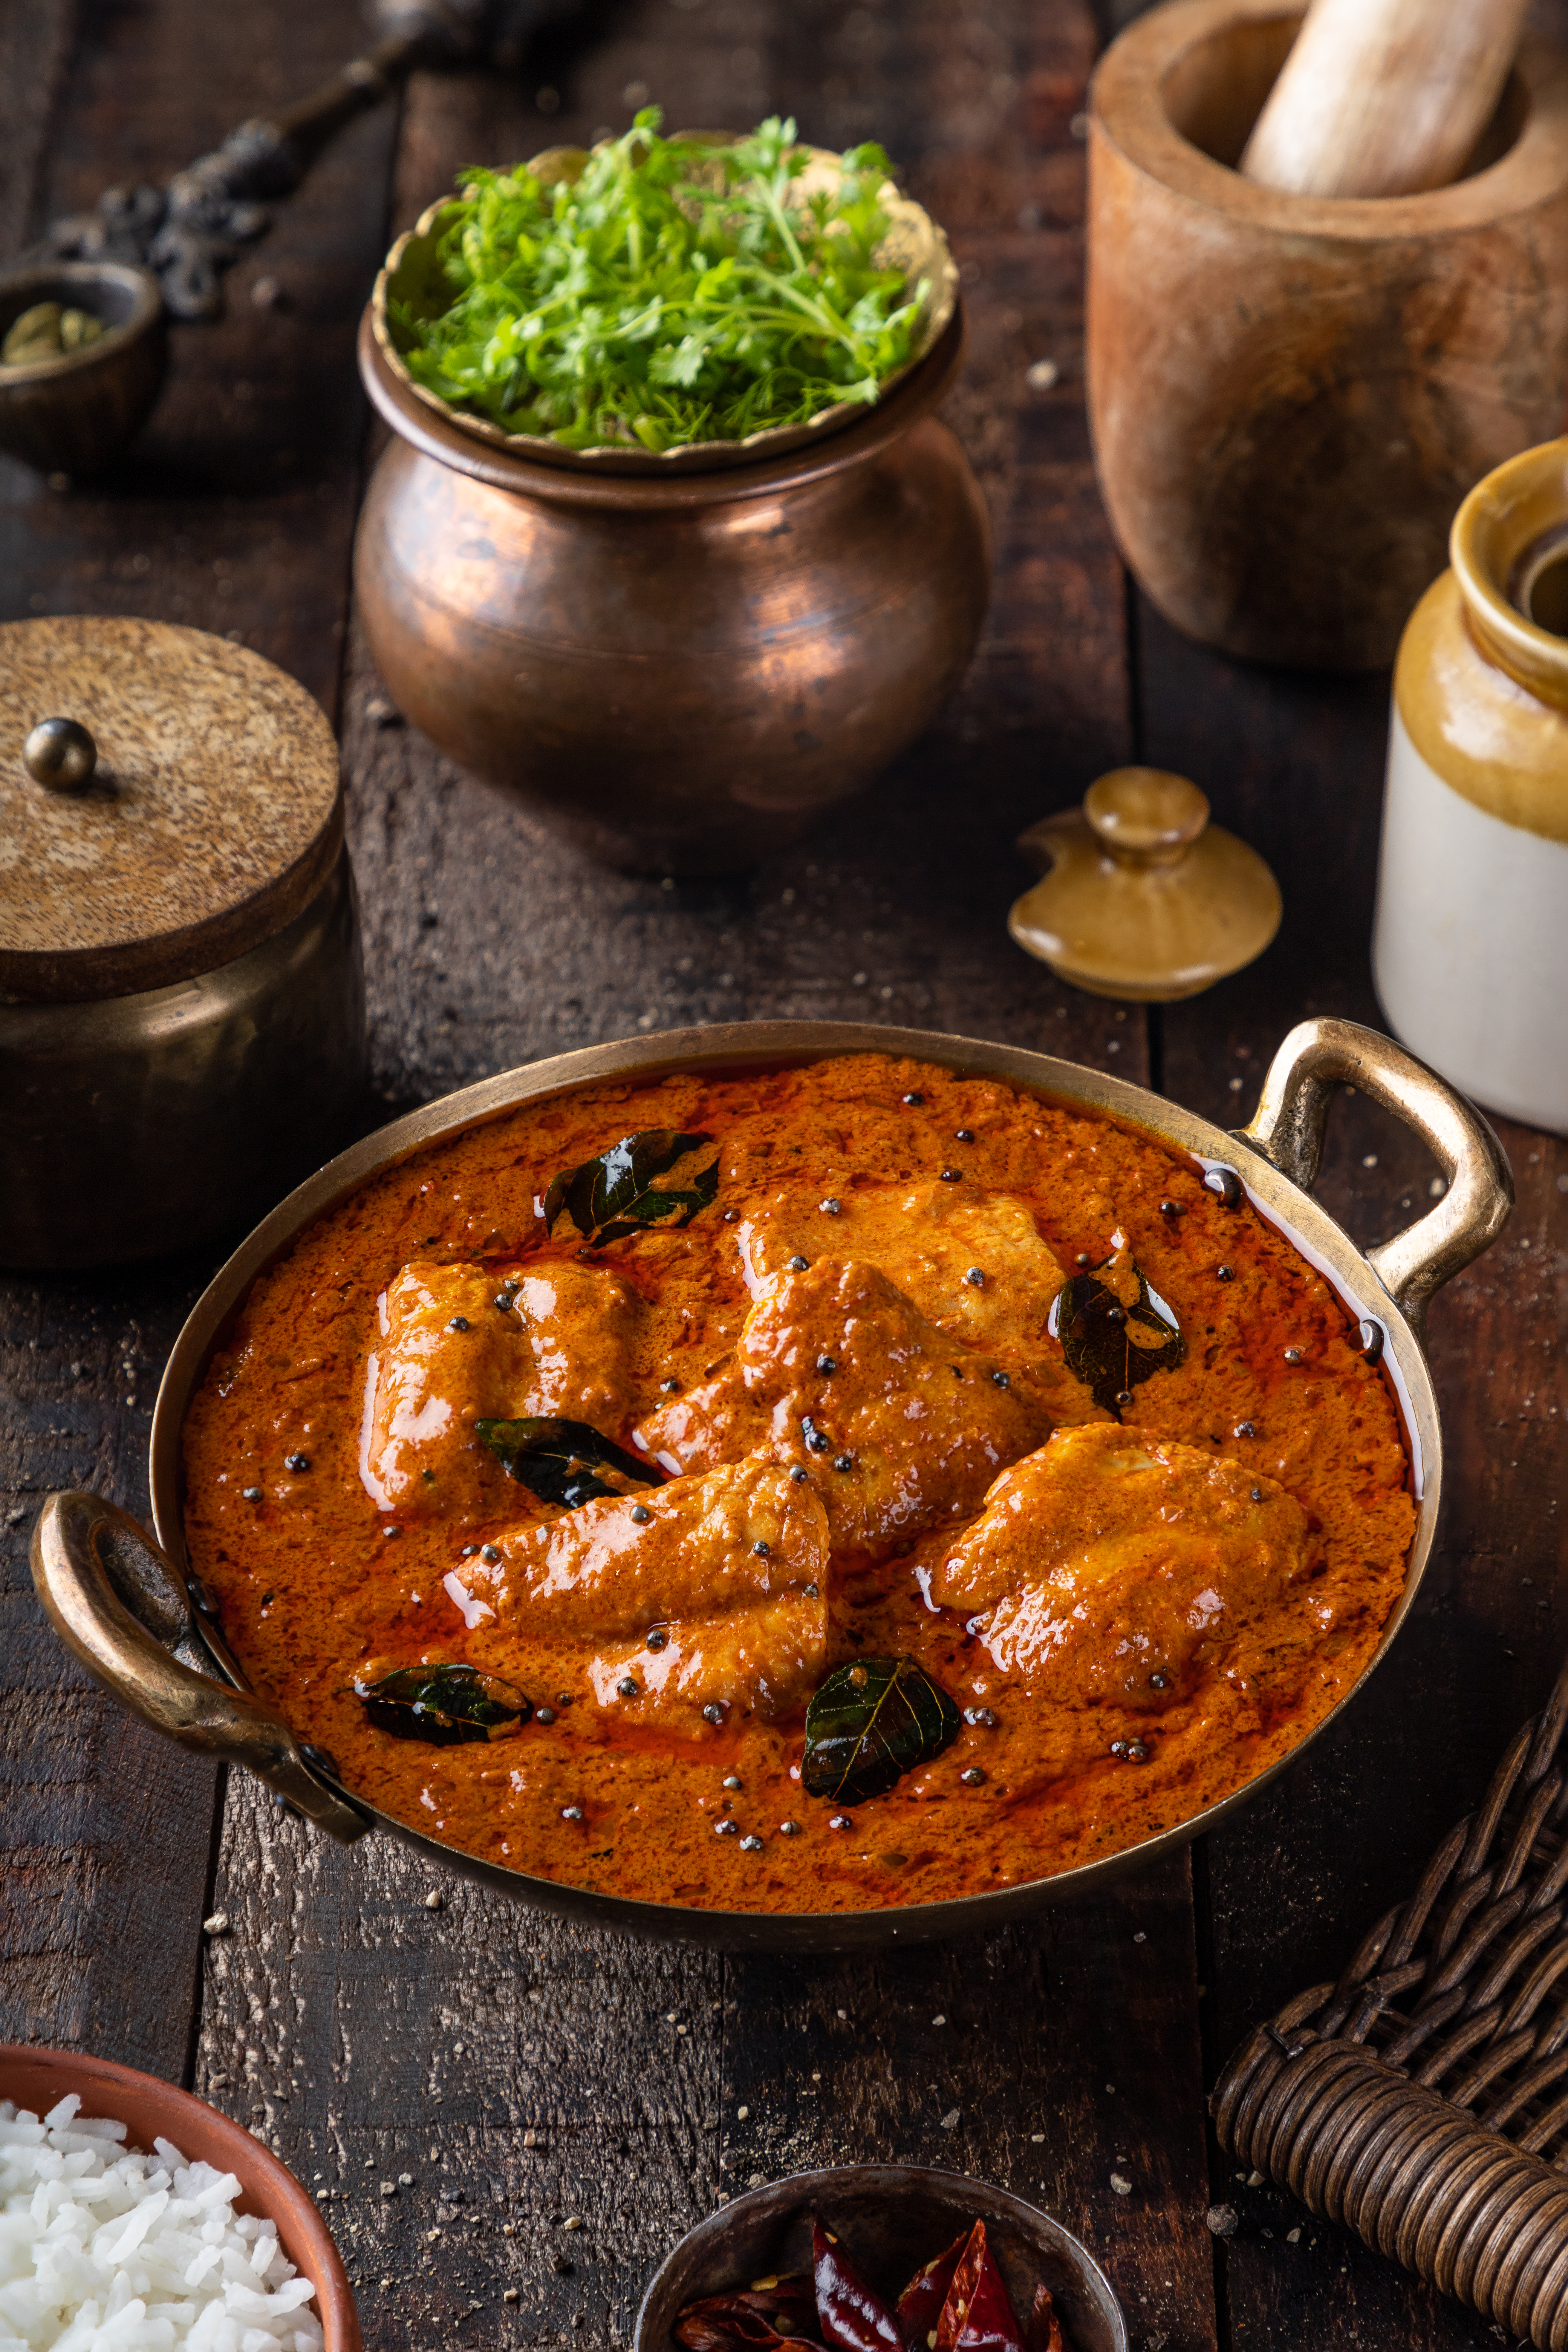 Alleppy Fish Curry